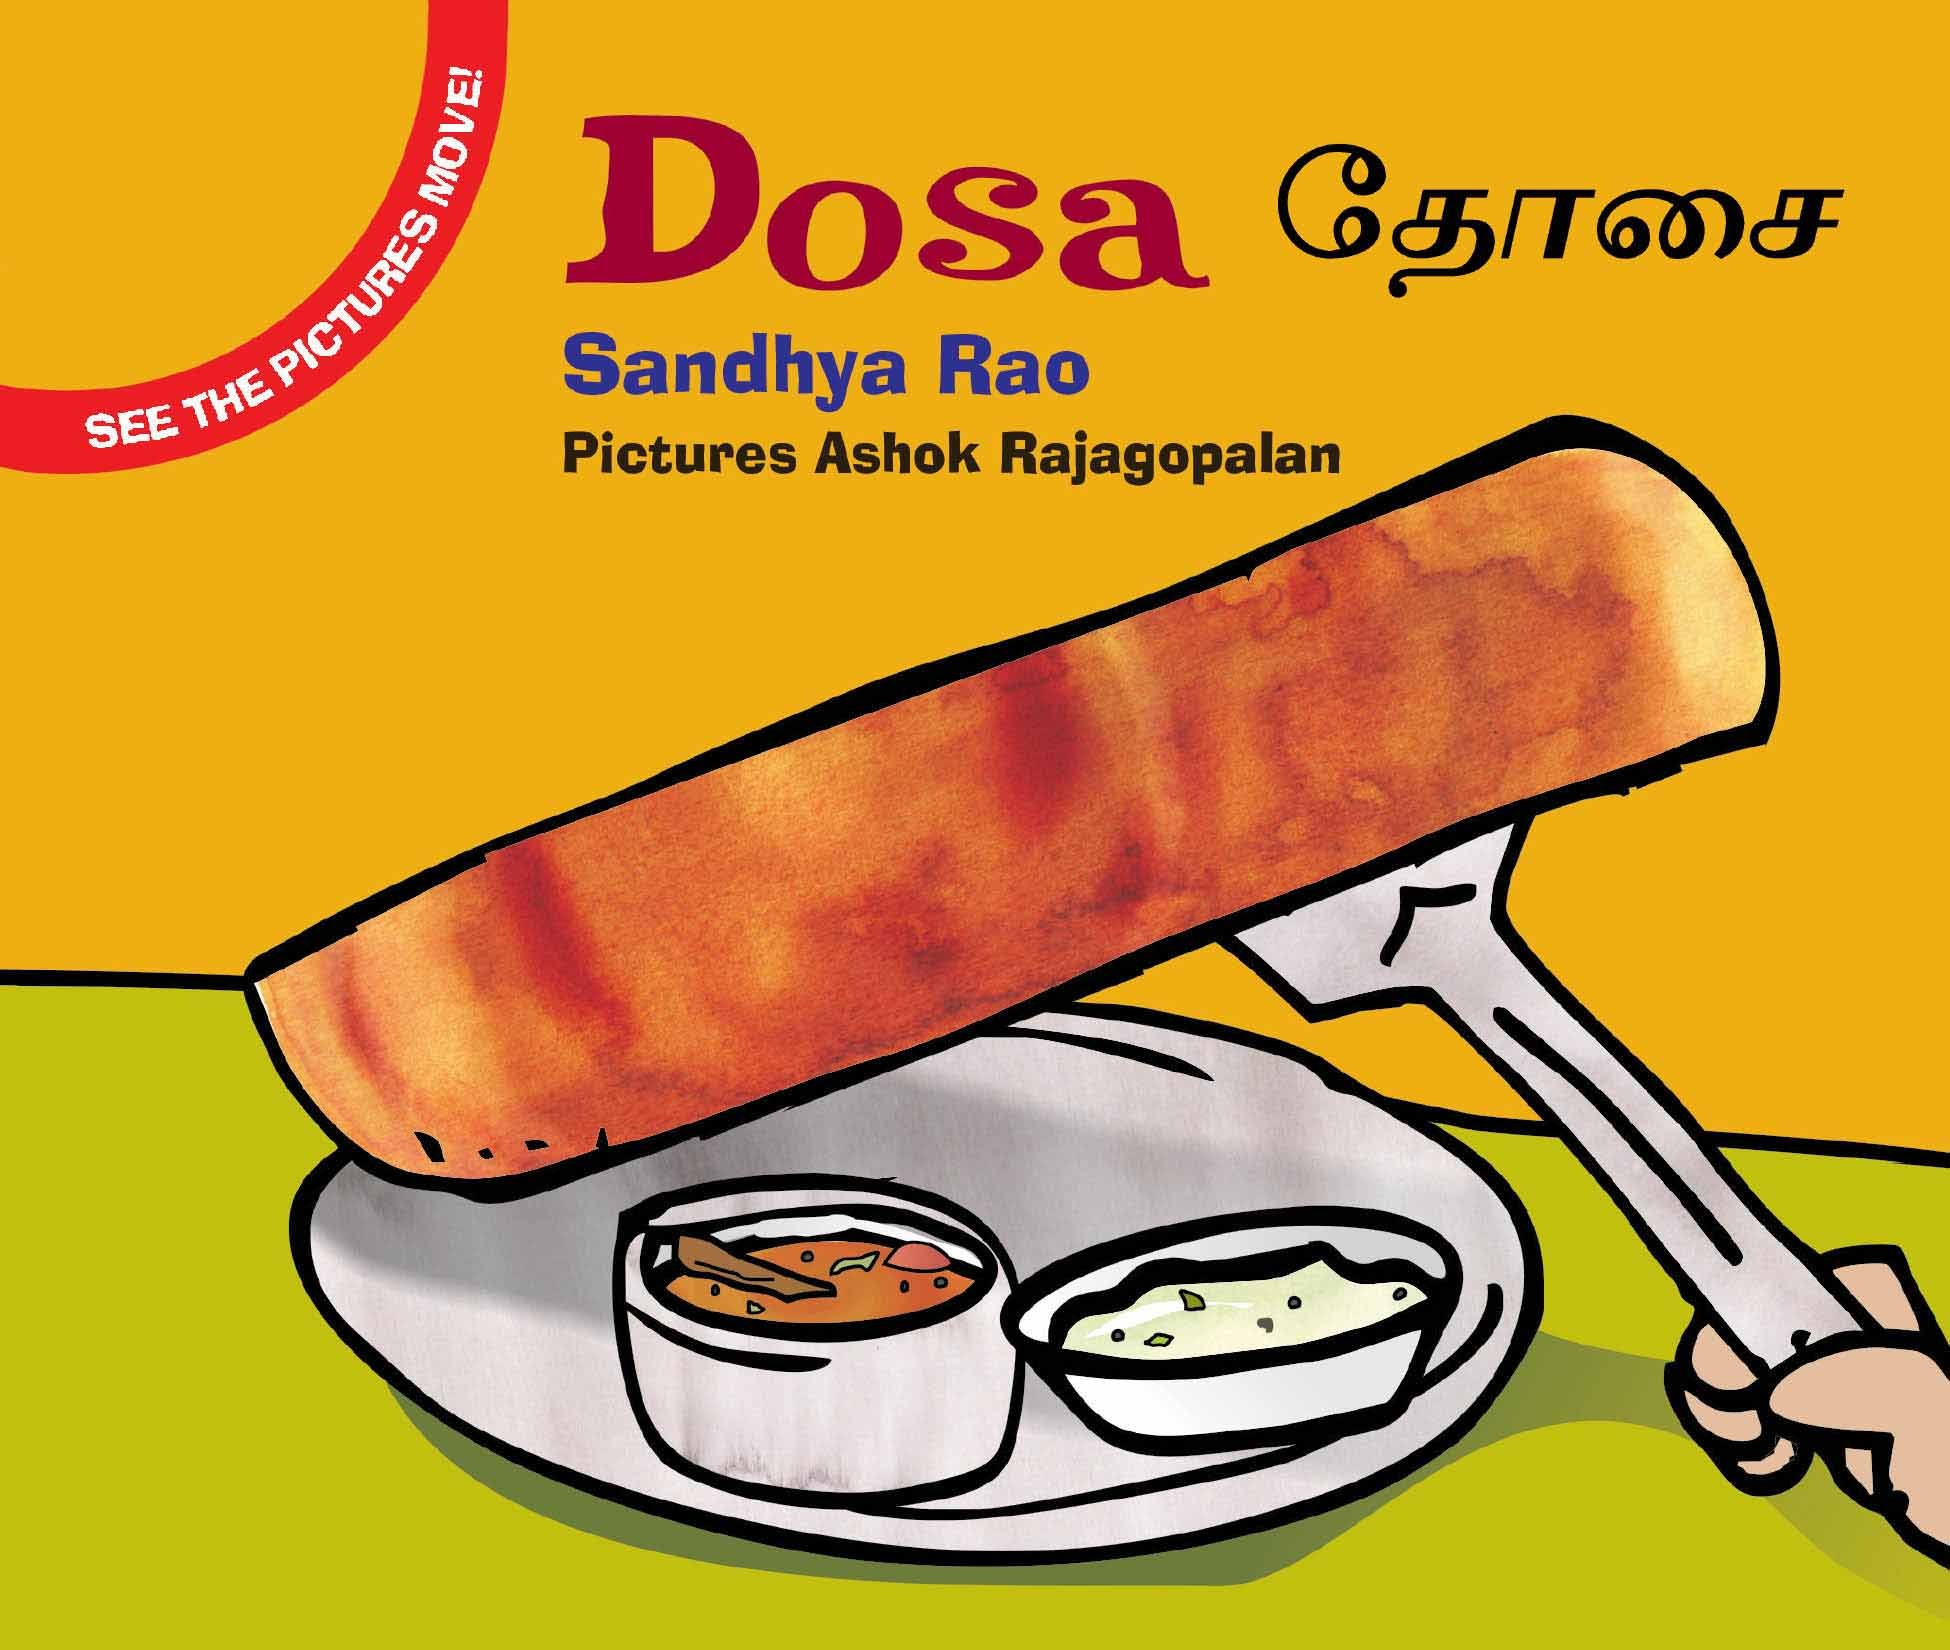 Dosa/Dosai (English-Tamil)